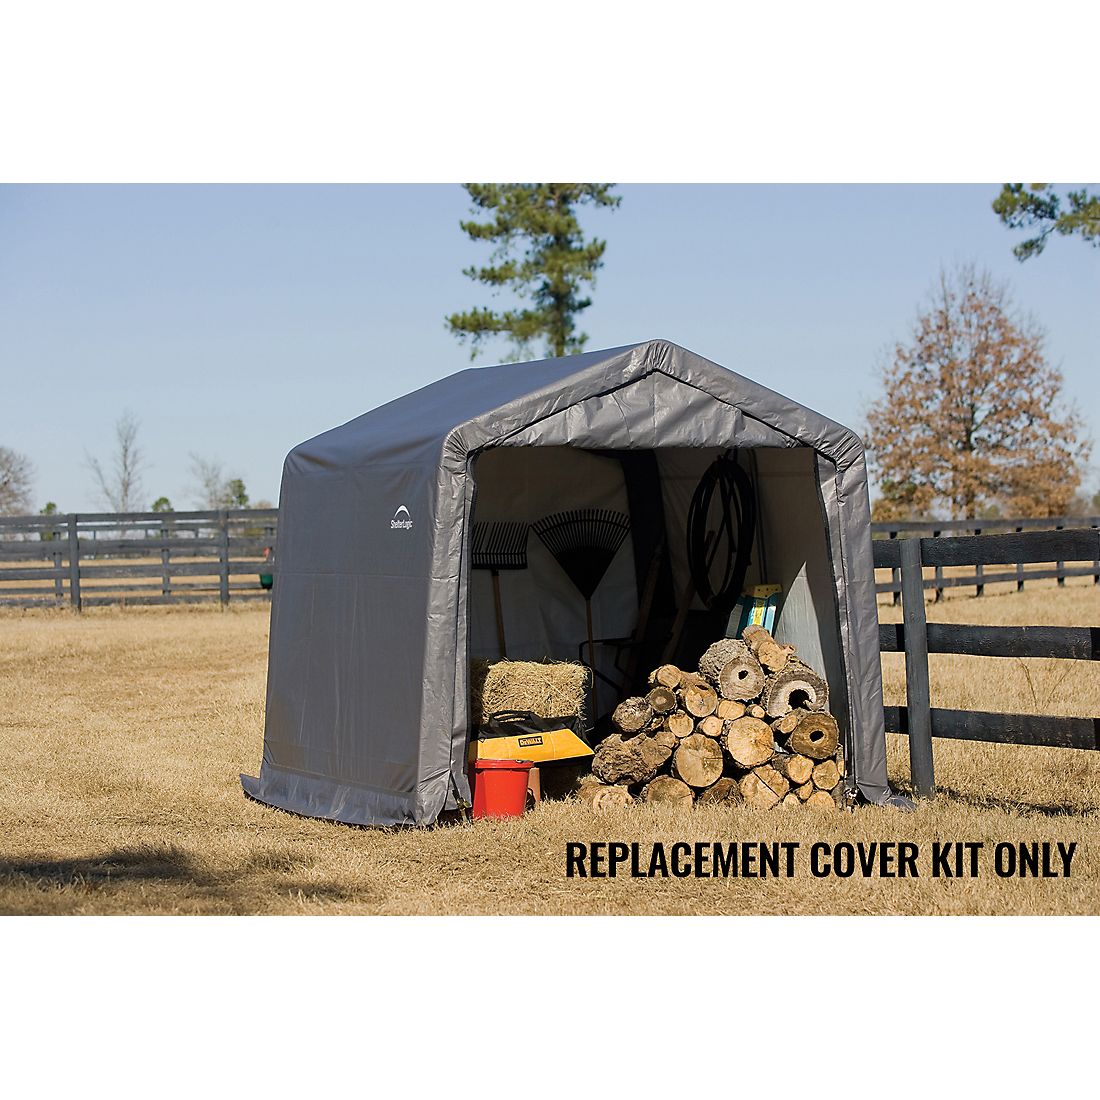 Replacement Cover Kit For The Shed In A Box 174 10 X 10 X 8 Ft